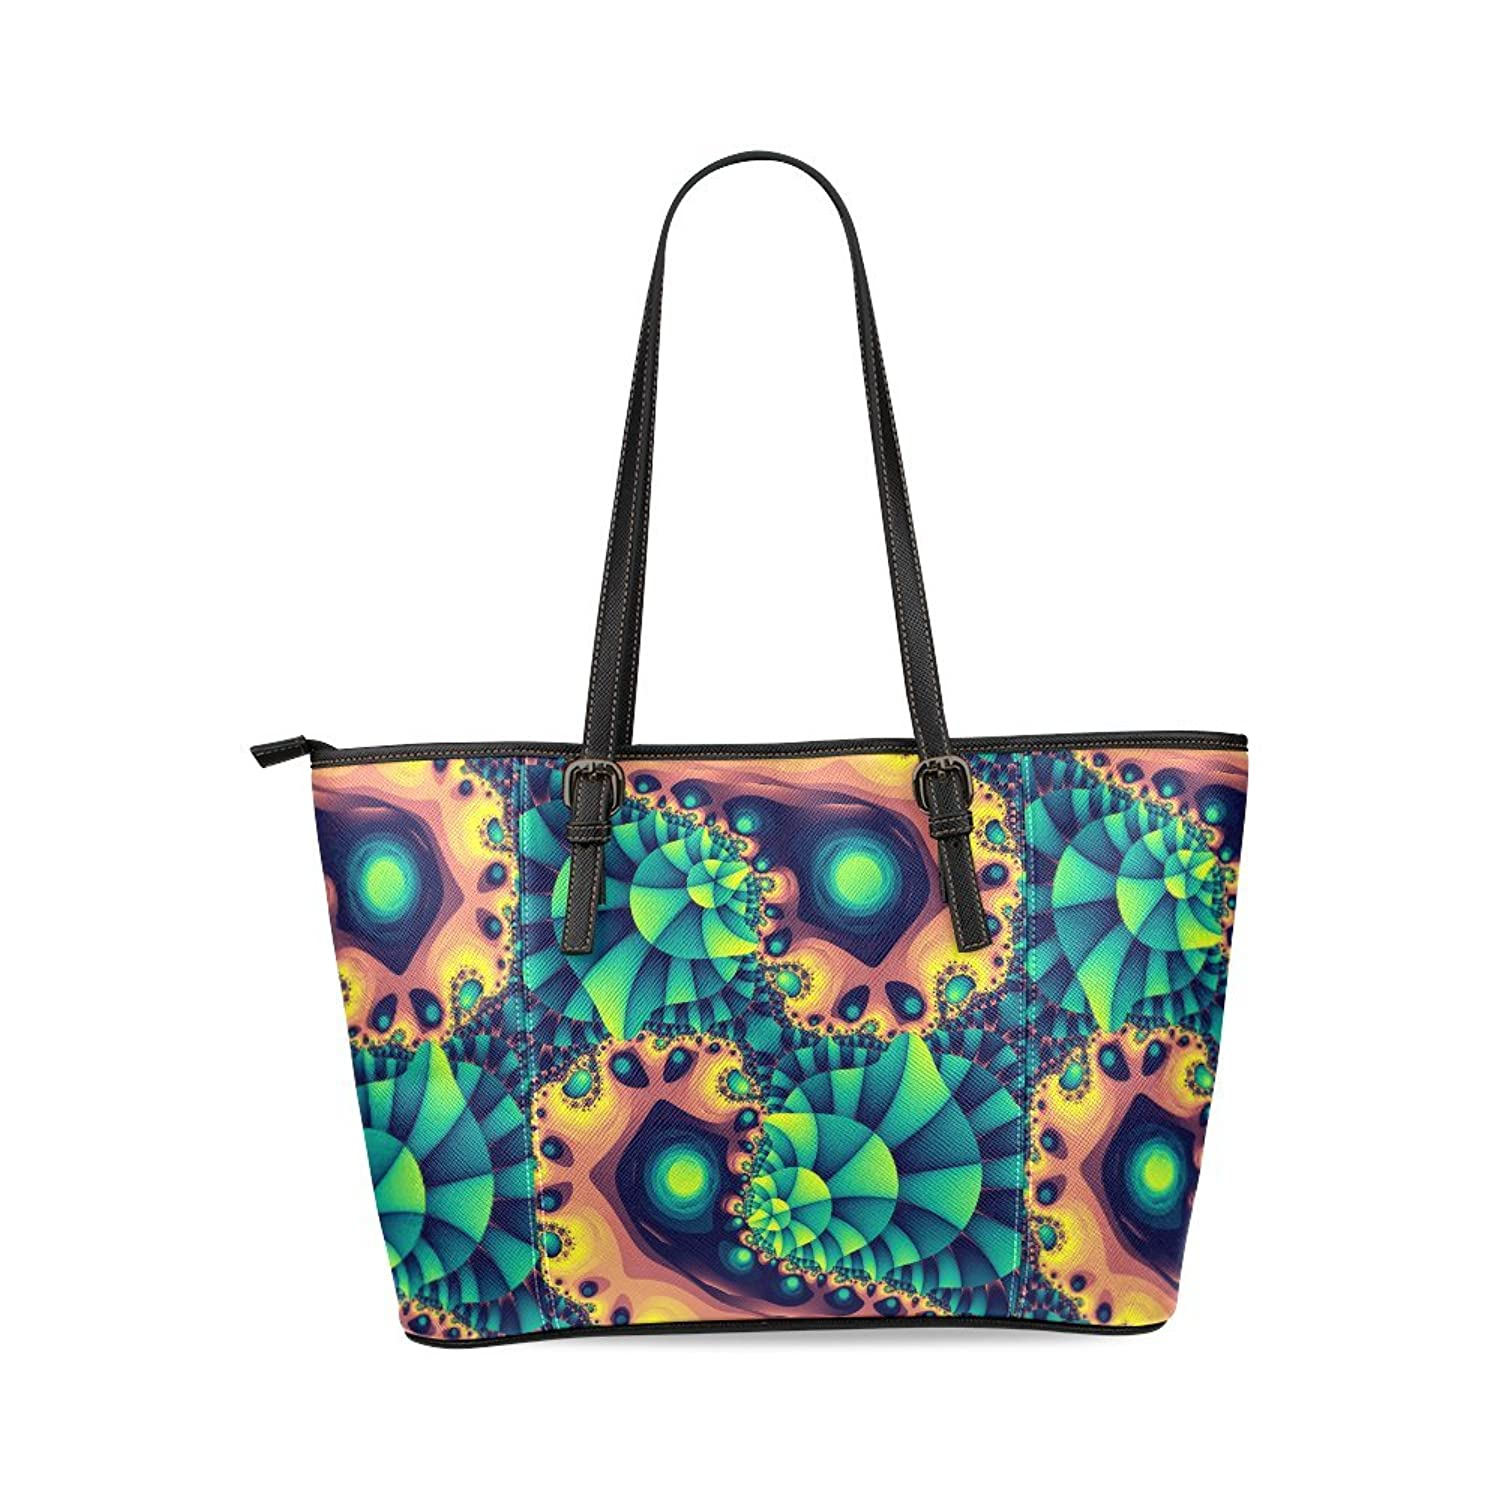 Abstract Fractal Colony Custom PU Leather Two-sided Printing Large Tote Bag/Handbag/Shoulder Bag for Fashion Women /Girls